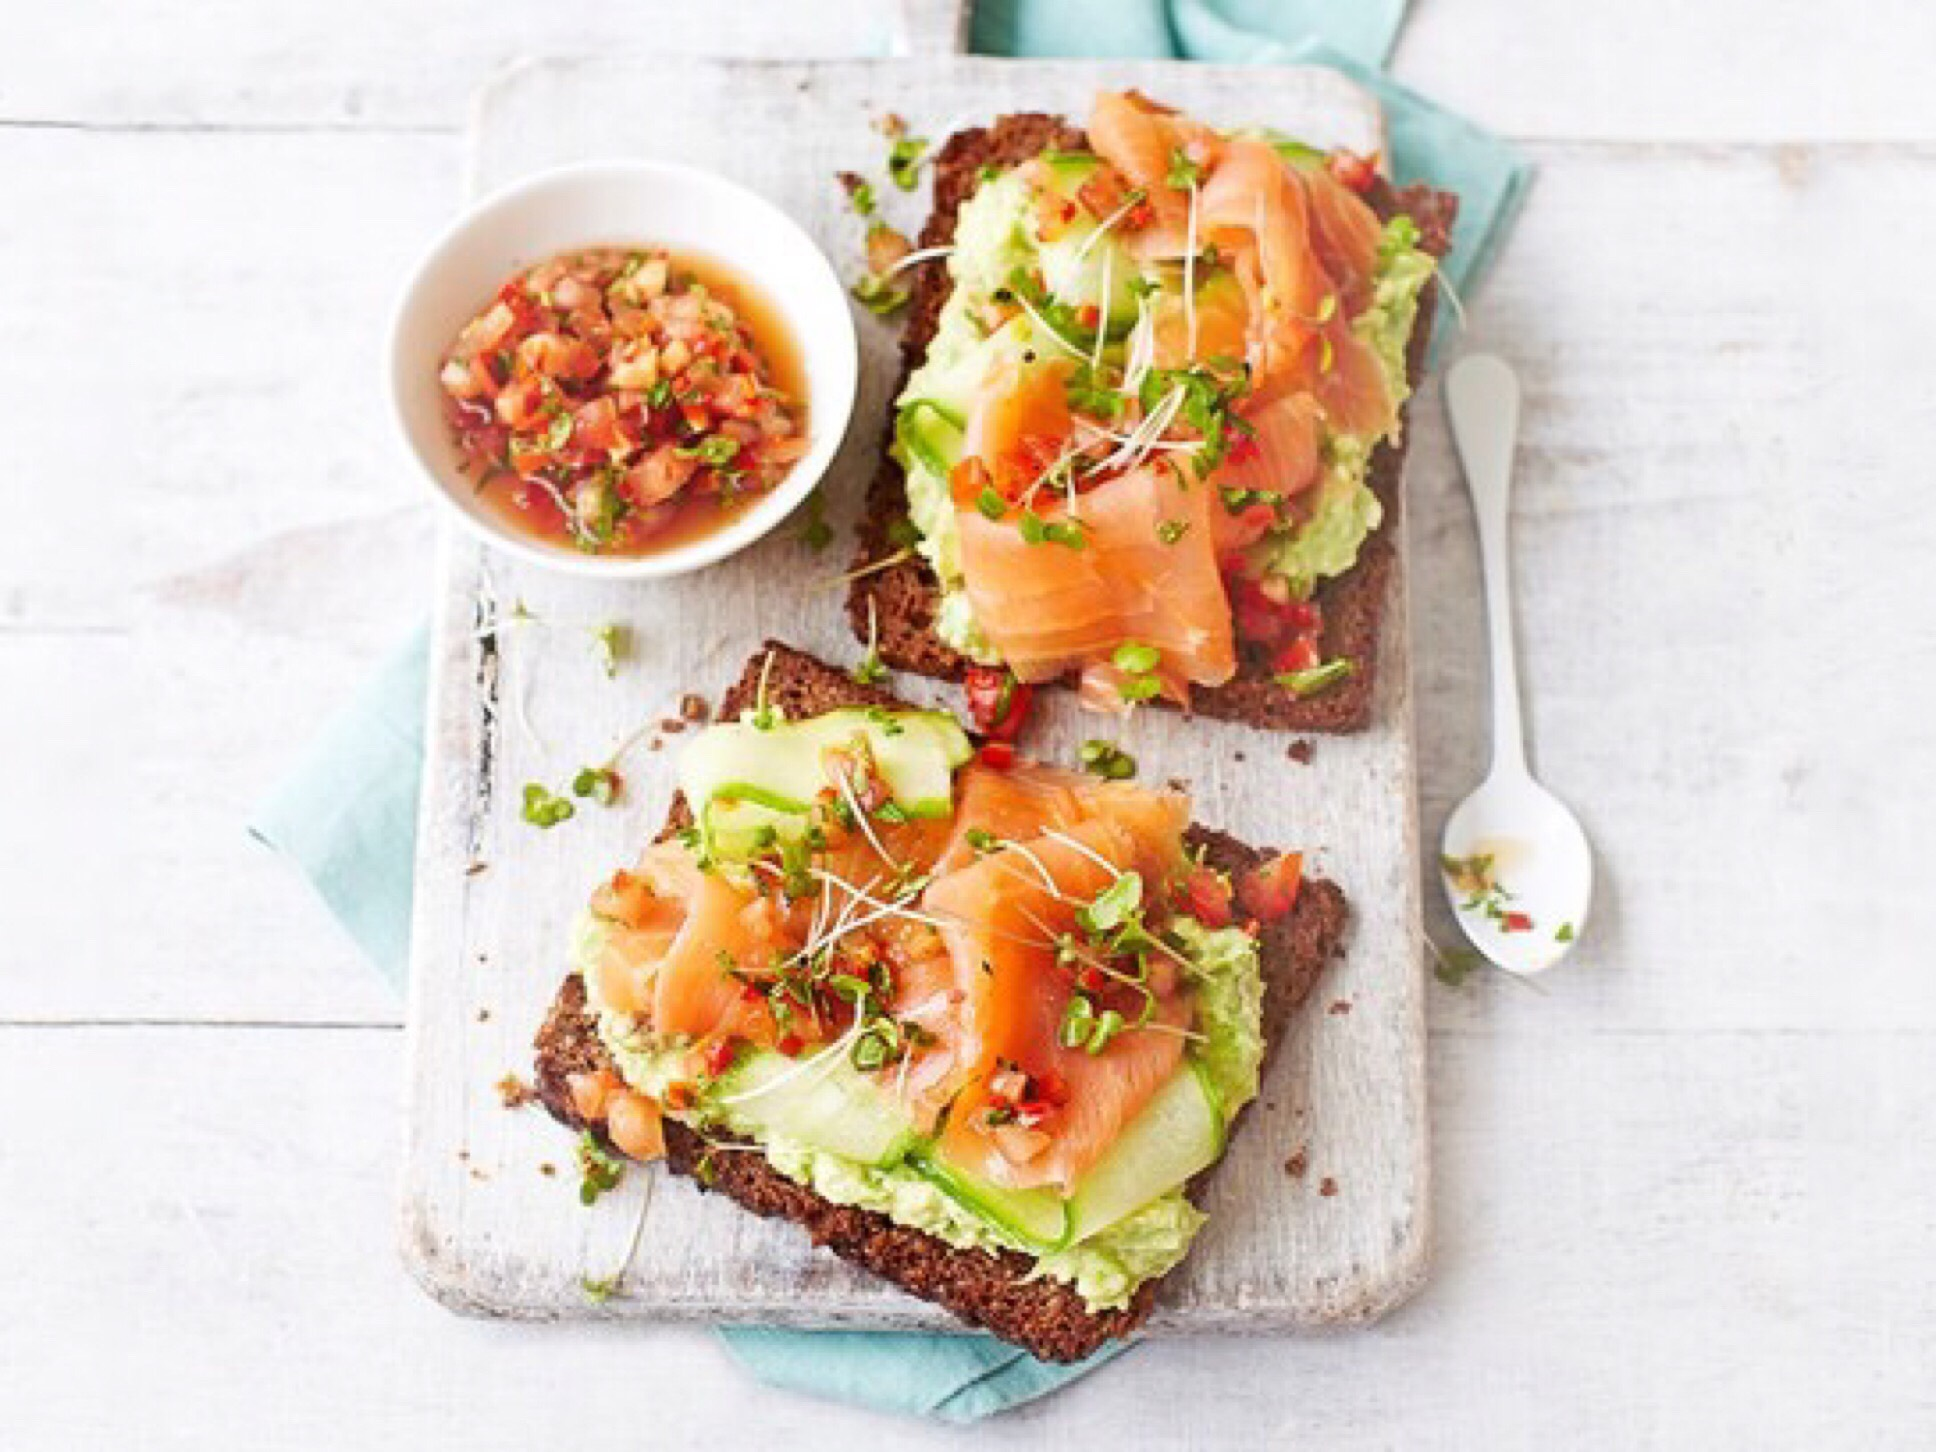 Salmon and Avocado - Breakfast in Bed